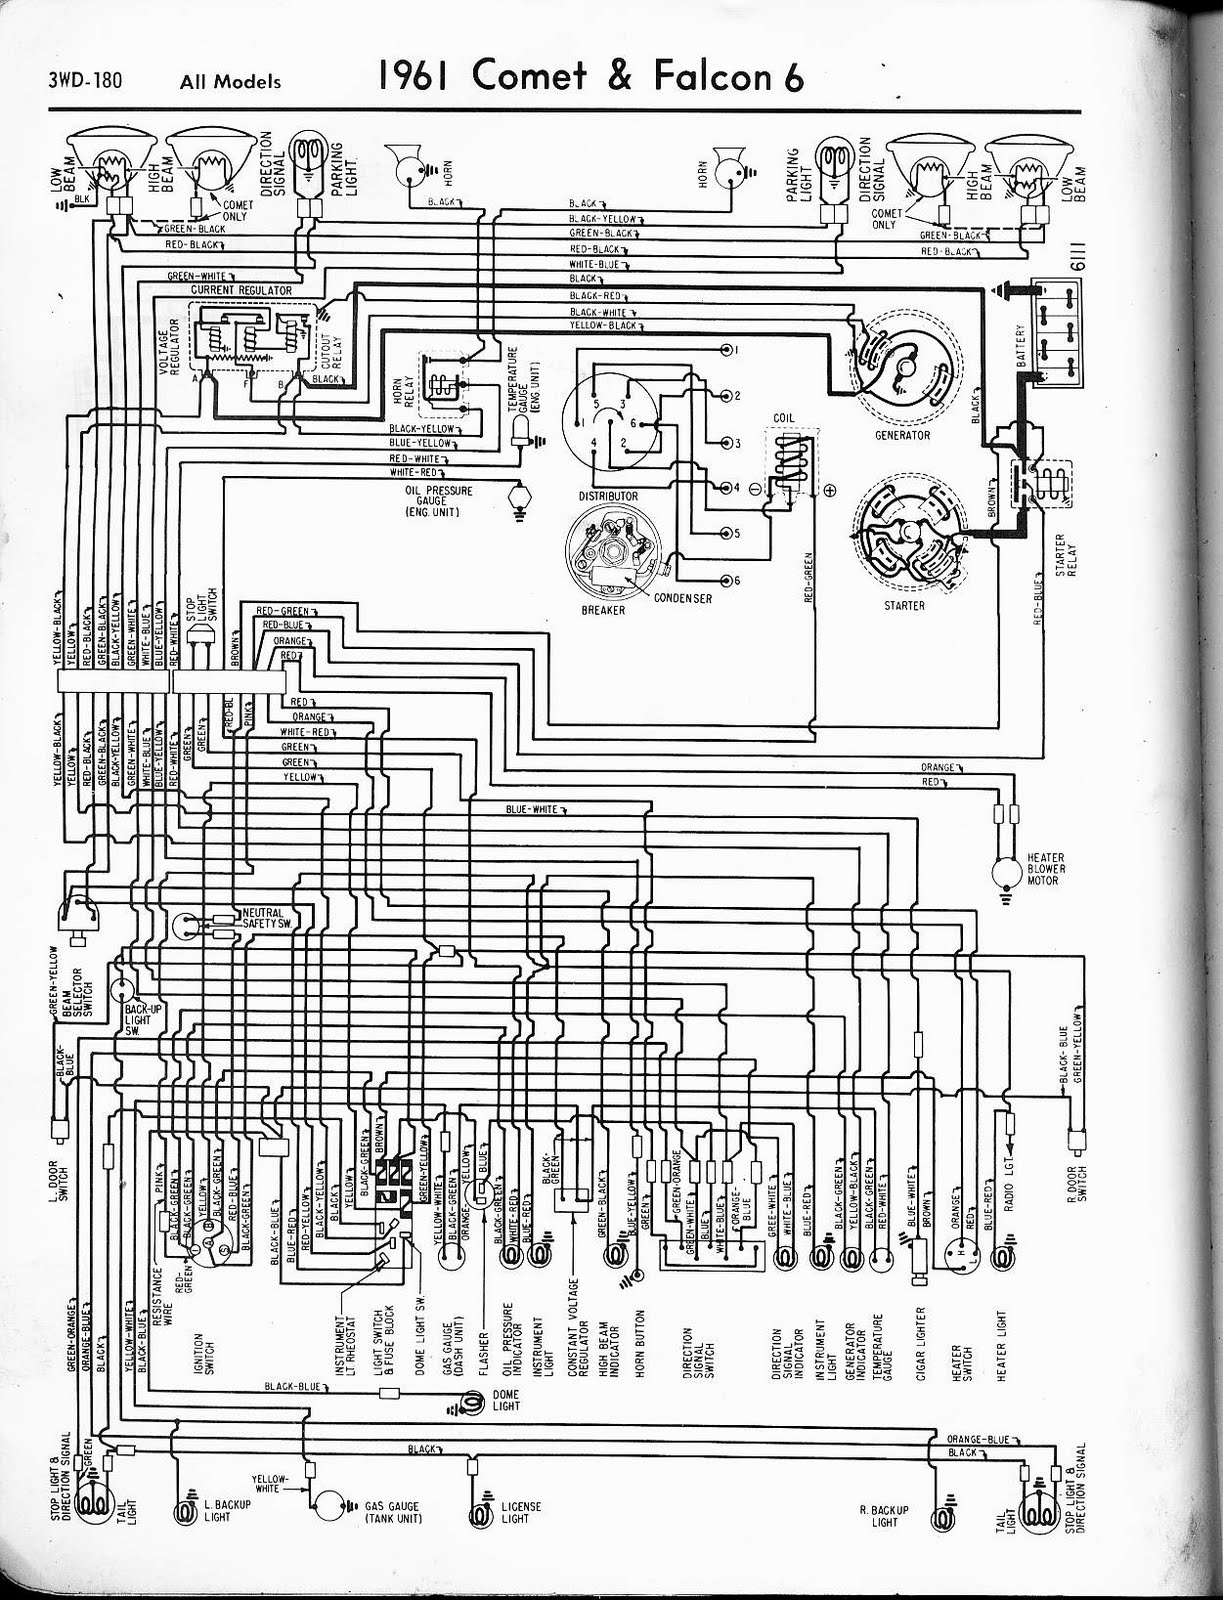 1965 mustang ignition coil wiring diagram 1976 porsche 911 ford inline 6 engine diagrams